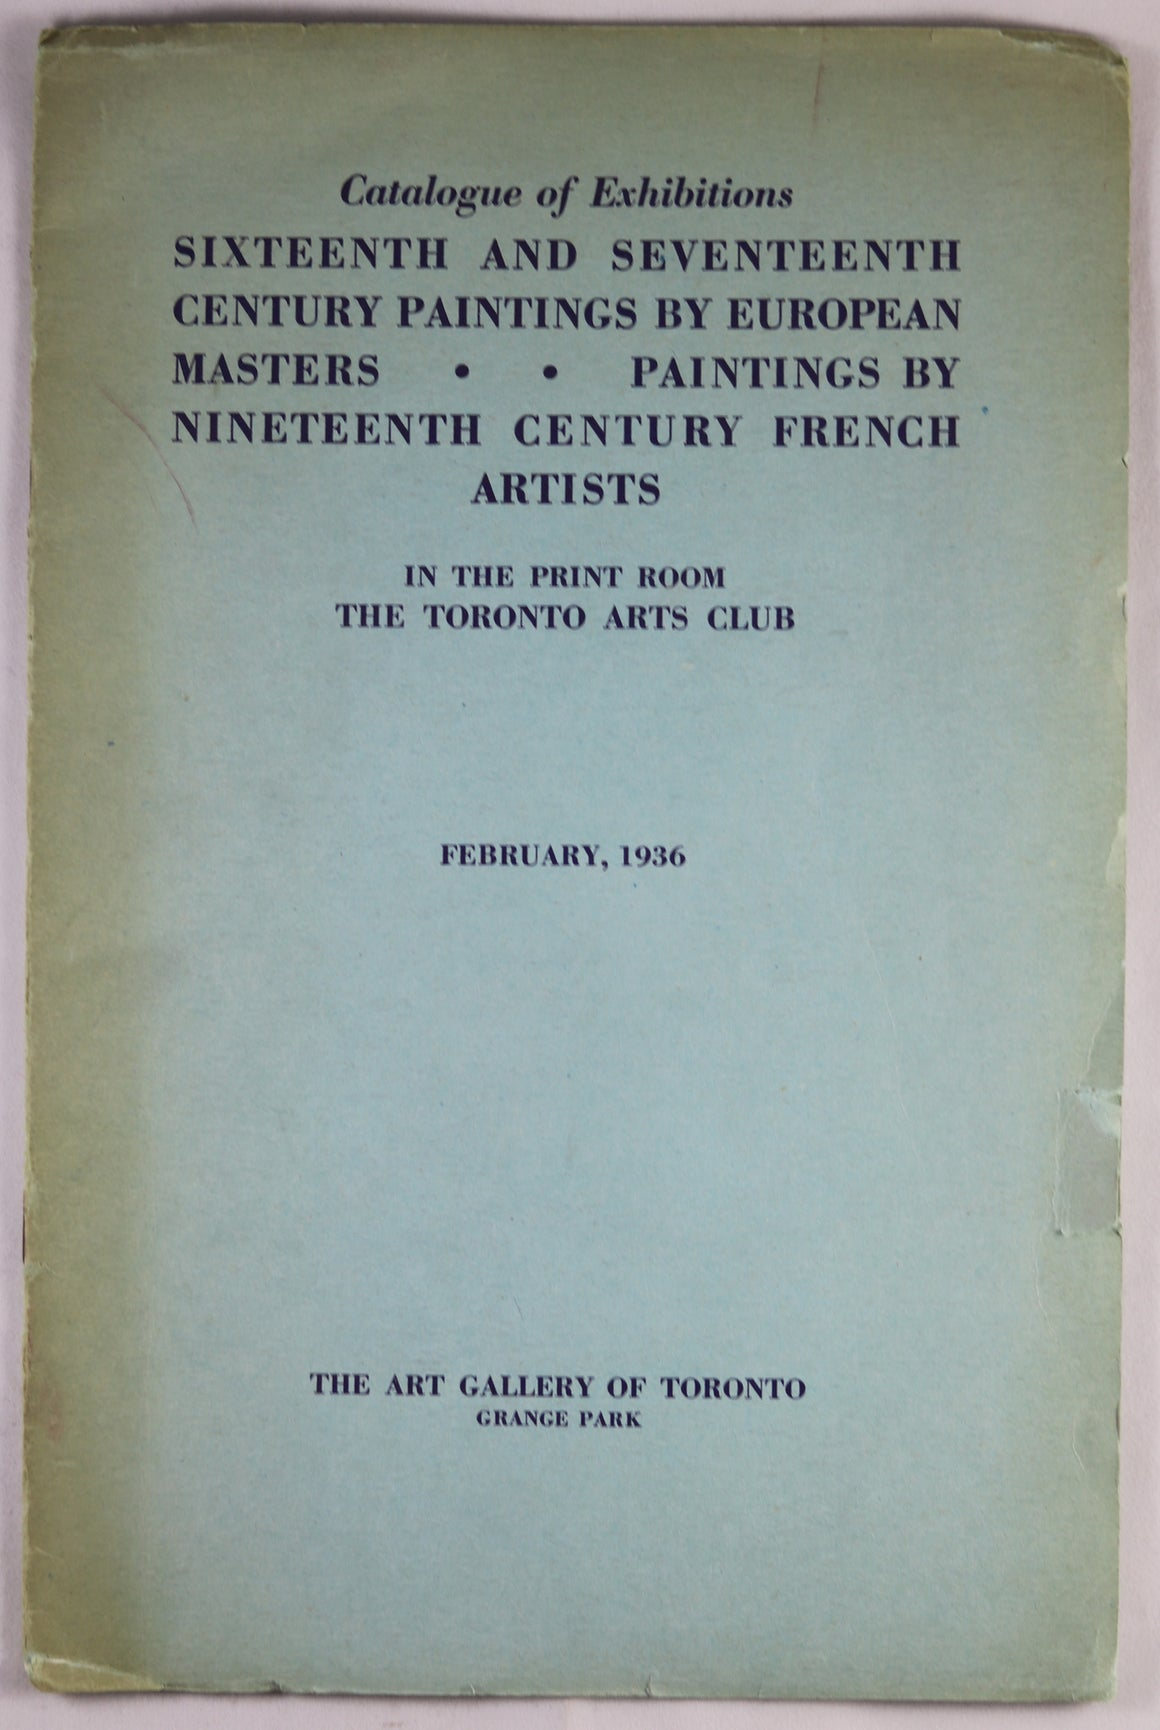 1936 Catalogue of Exhibitions AGO Print Room - Toronto Arts Club